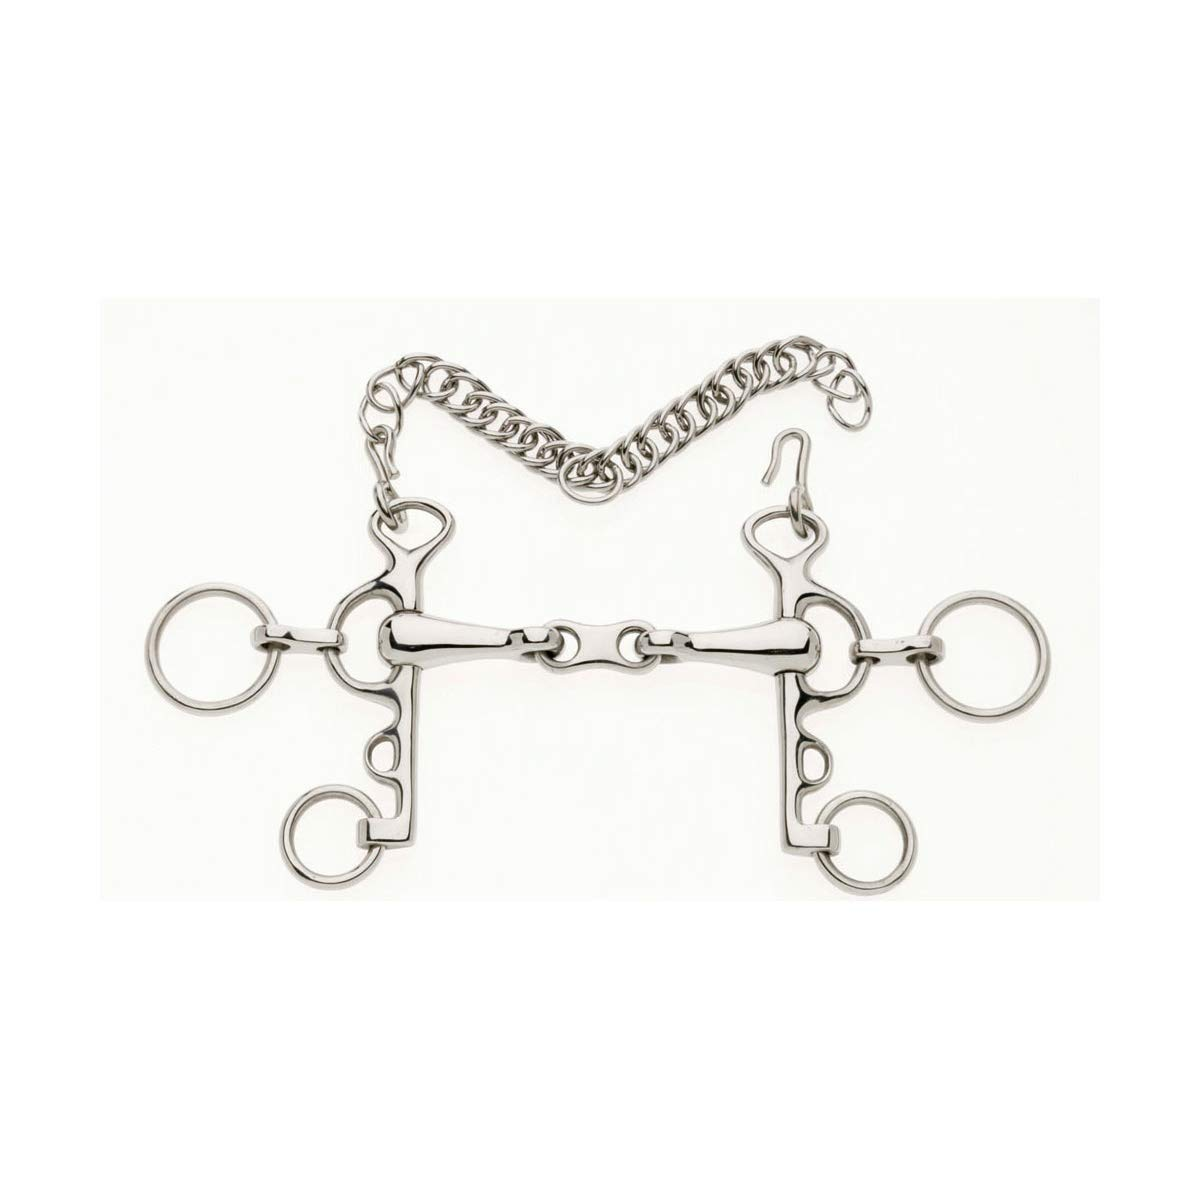 Lorina French Link Rugby Pelham (5.5in) (Silver) UTBZ276